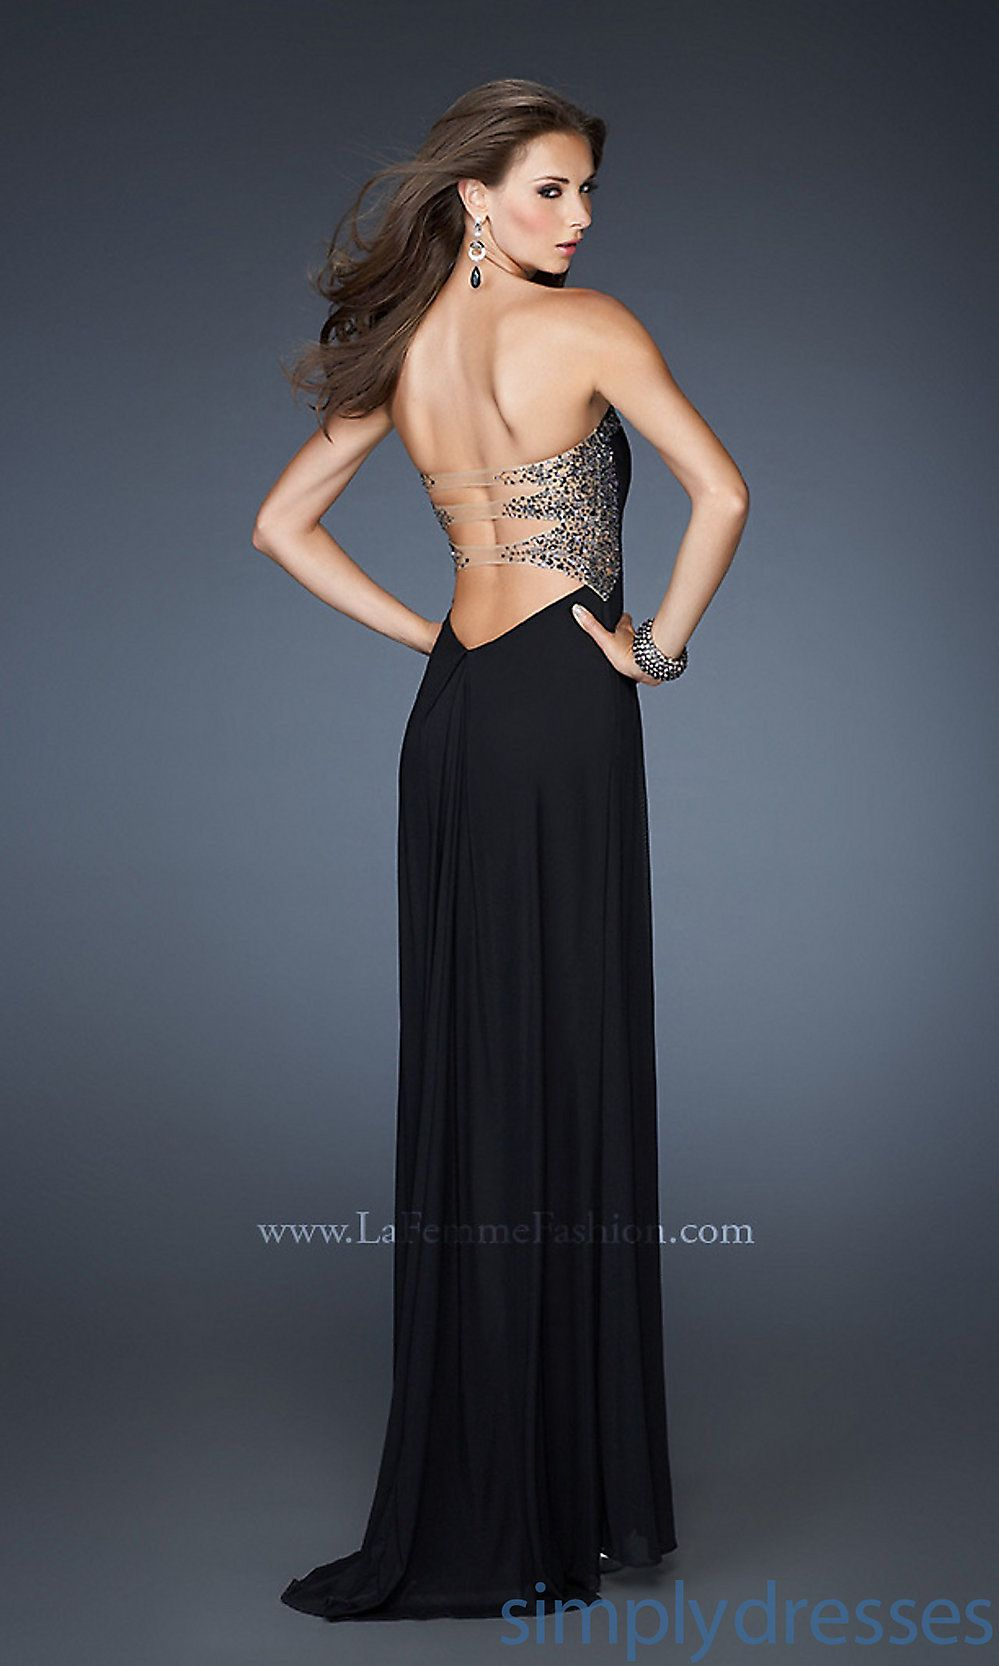 1000  images about Clothing on Pinterest - Long prom dresses ...